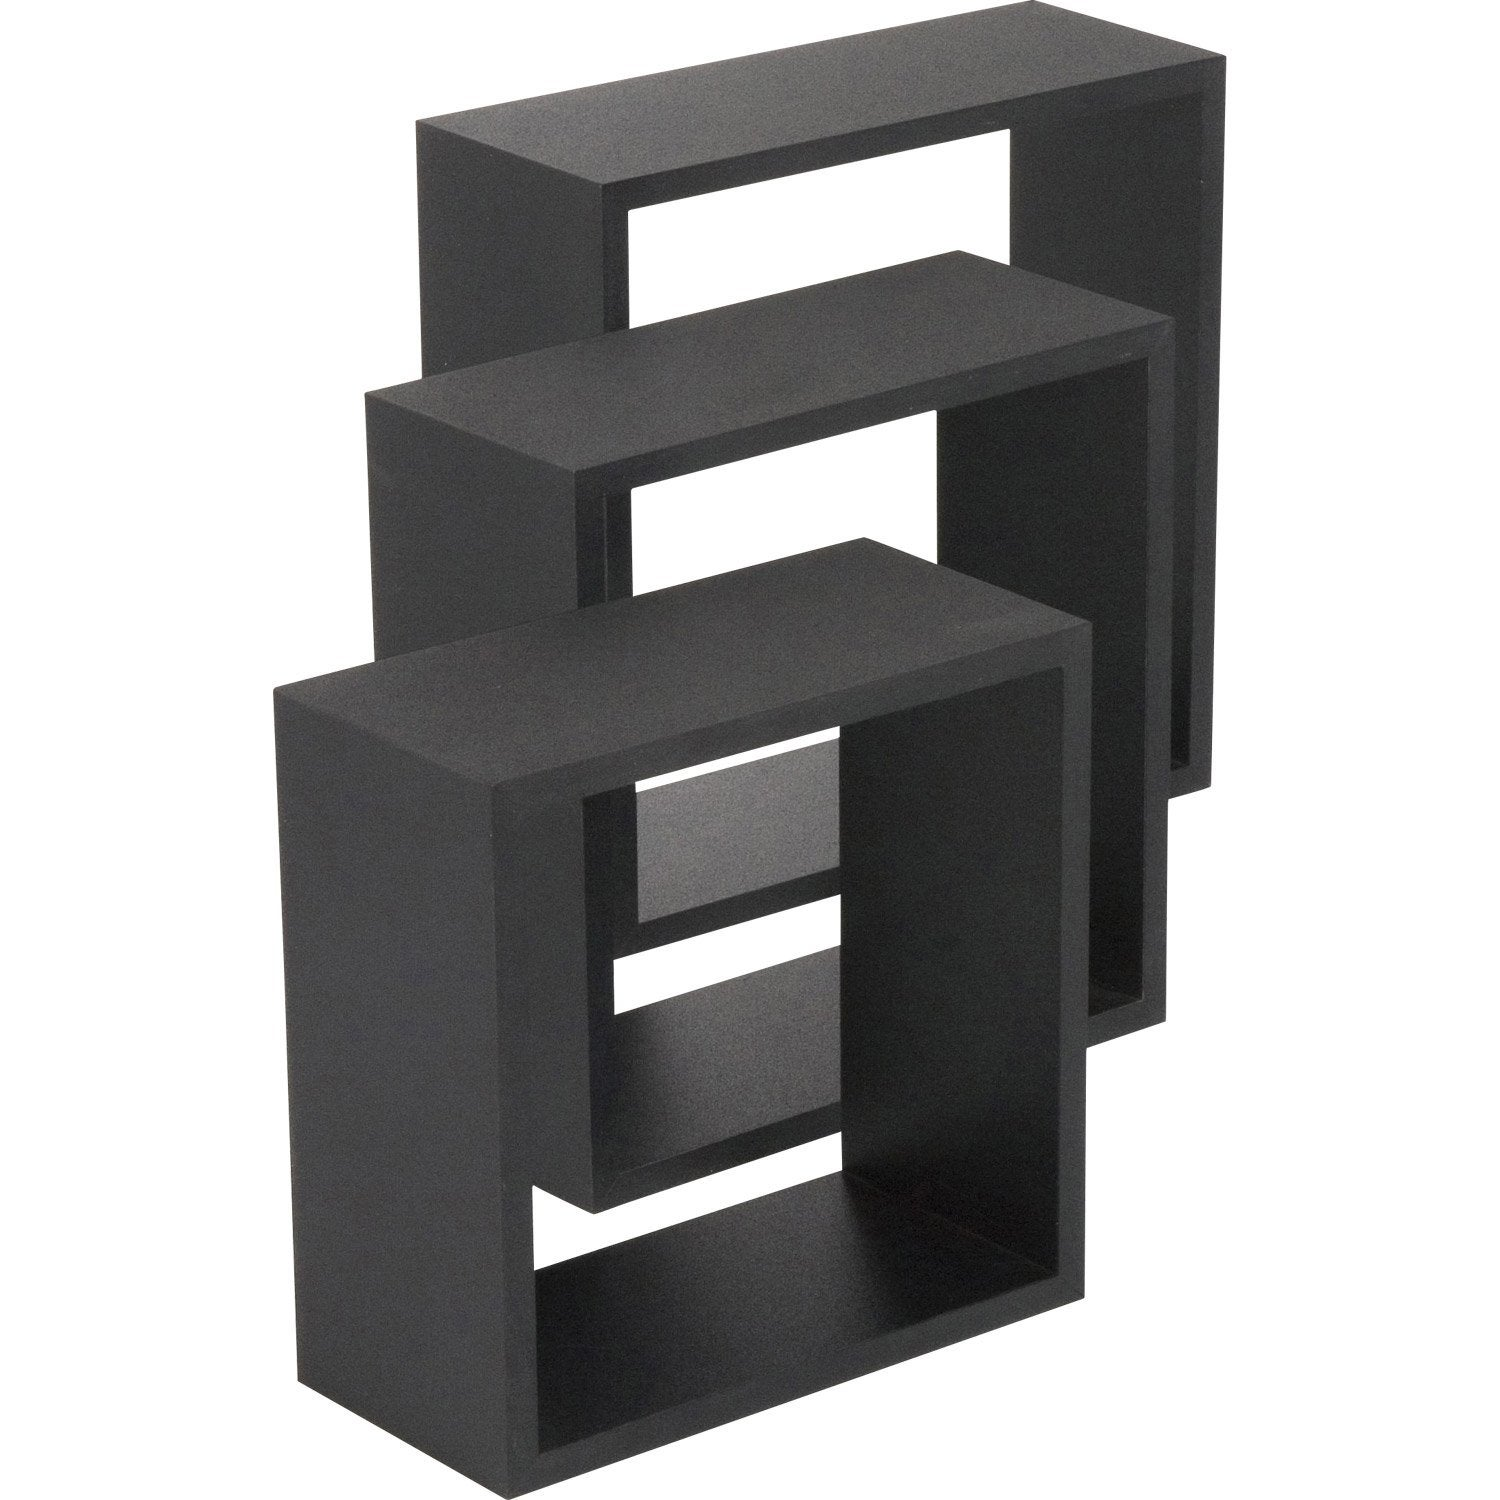 3 tag res cubes noir astuce duraline l 30 x p 30 cm p 12 mm leroy merlin. Black Bedroom Furniture Sets. Home Design Ideas